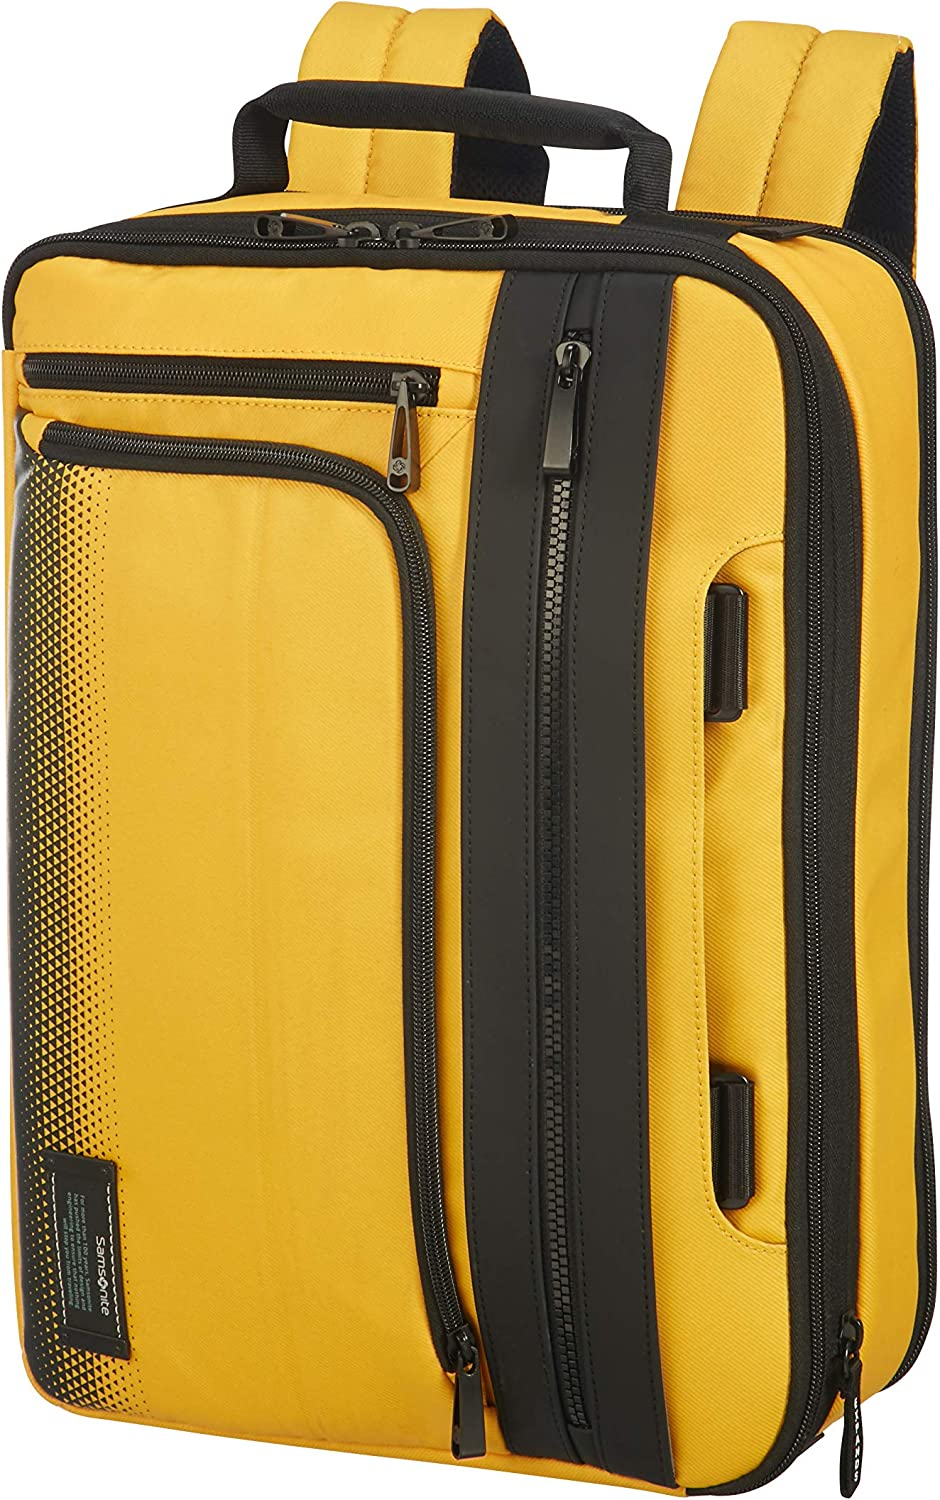 "KRPENRIO Mens Leather Business Briefcase Mens Messenger Bag Leisure Satchel Handbag Yellow for 13/""Laptop"